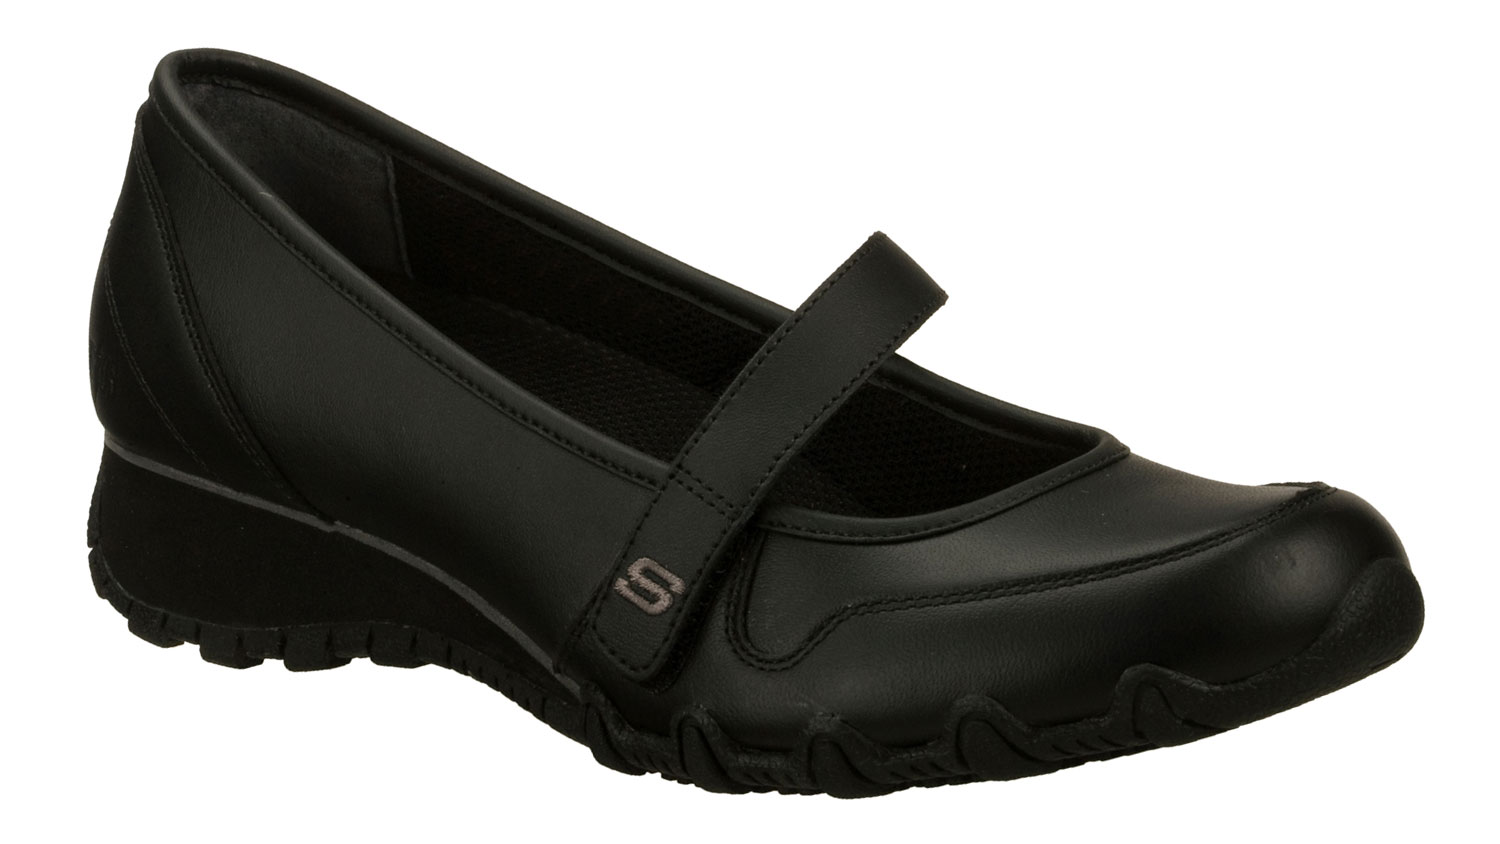 Slip Resistant Shoes In Store